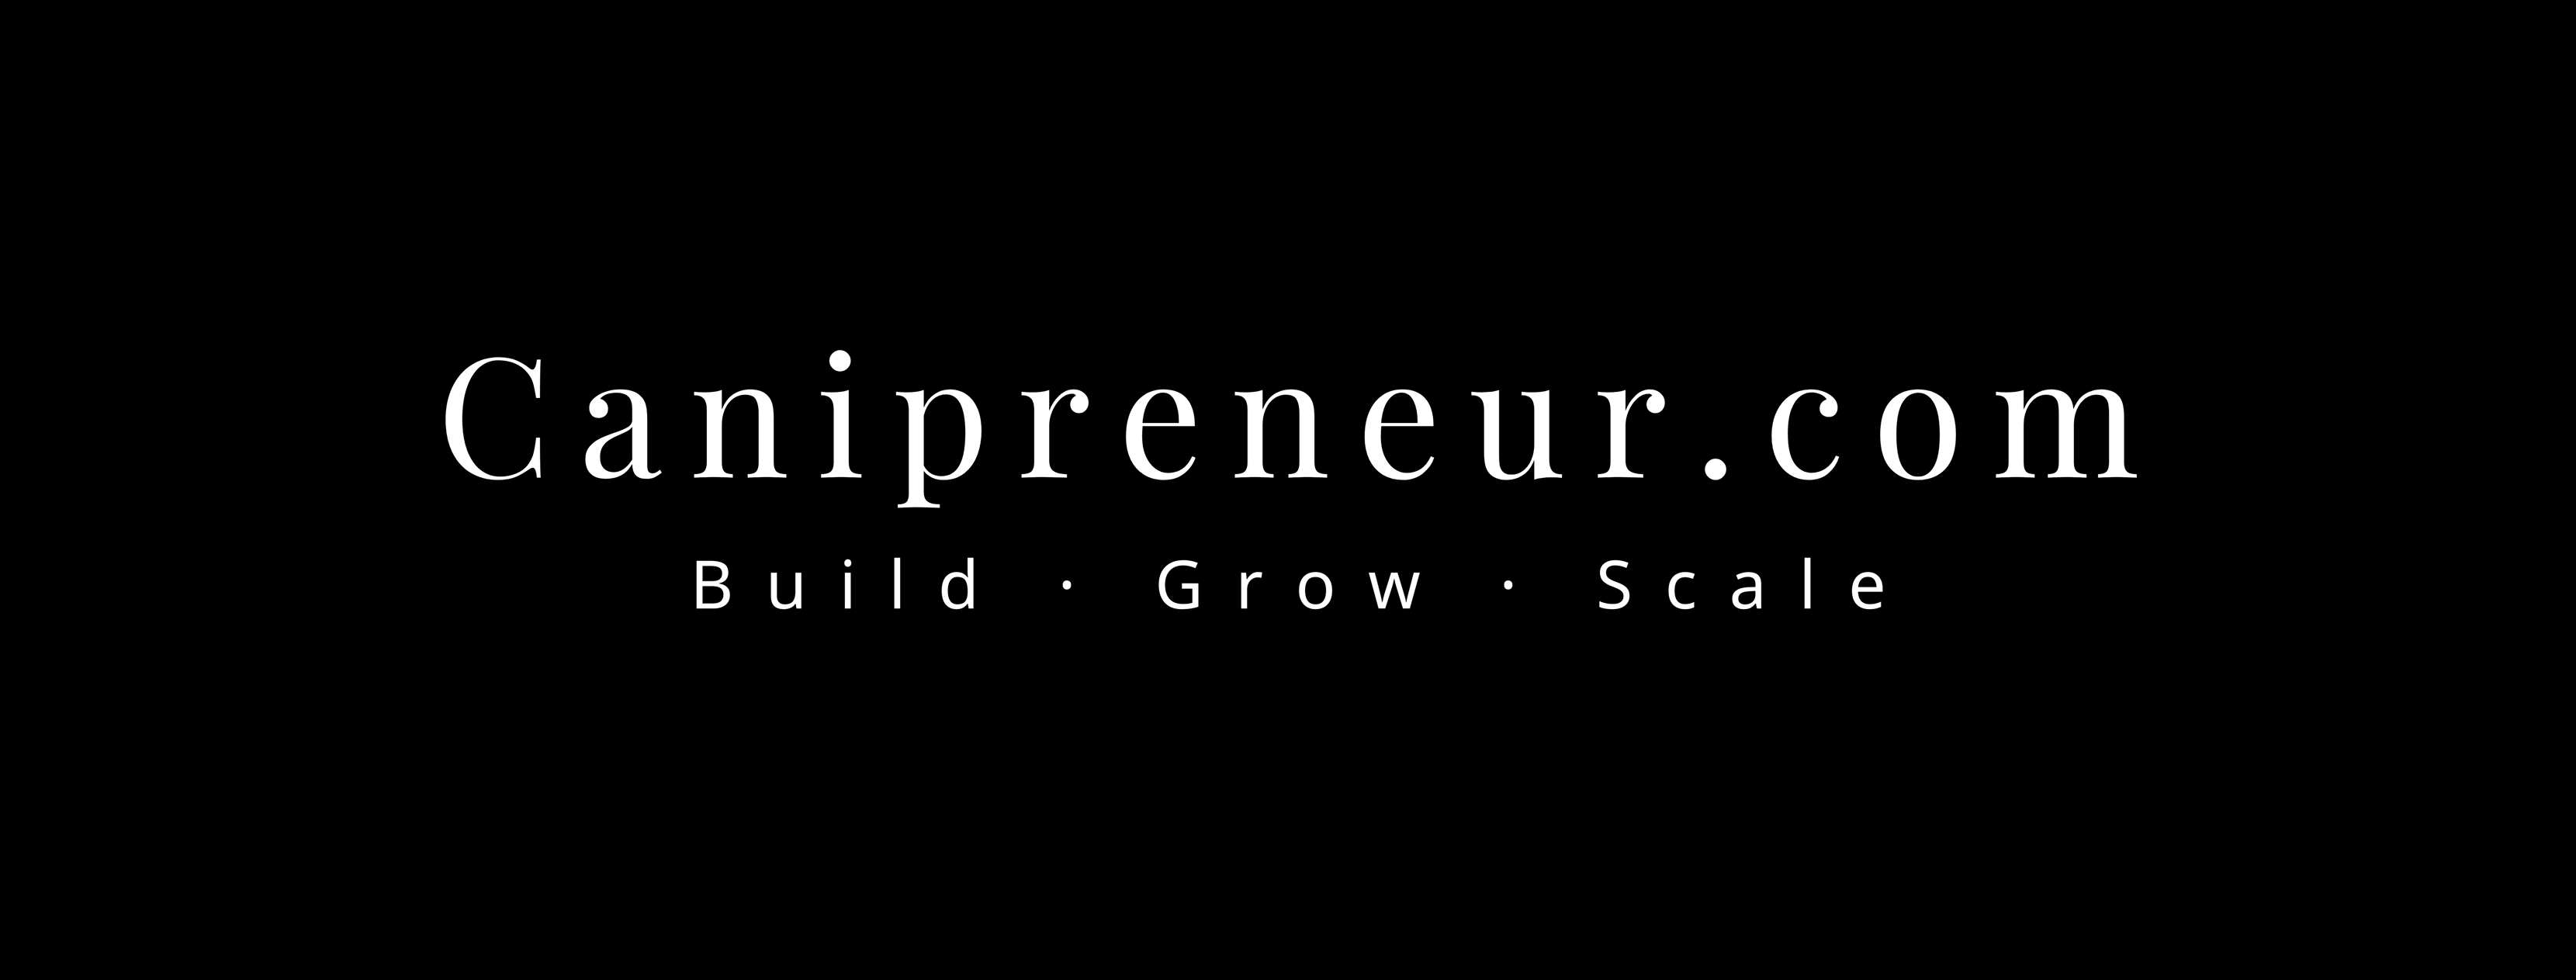 CANiPRENEUR: Building, Scaling, & Growing Our Green Future